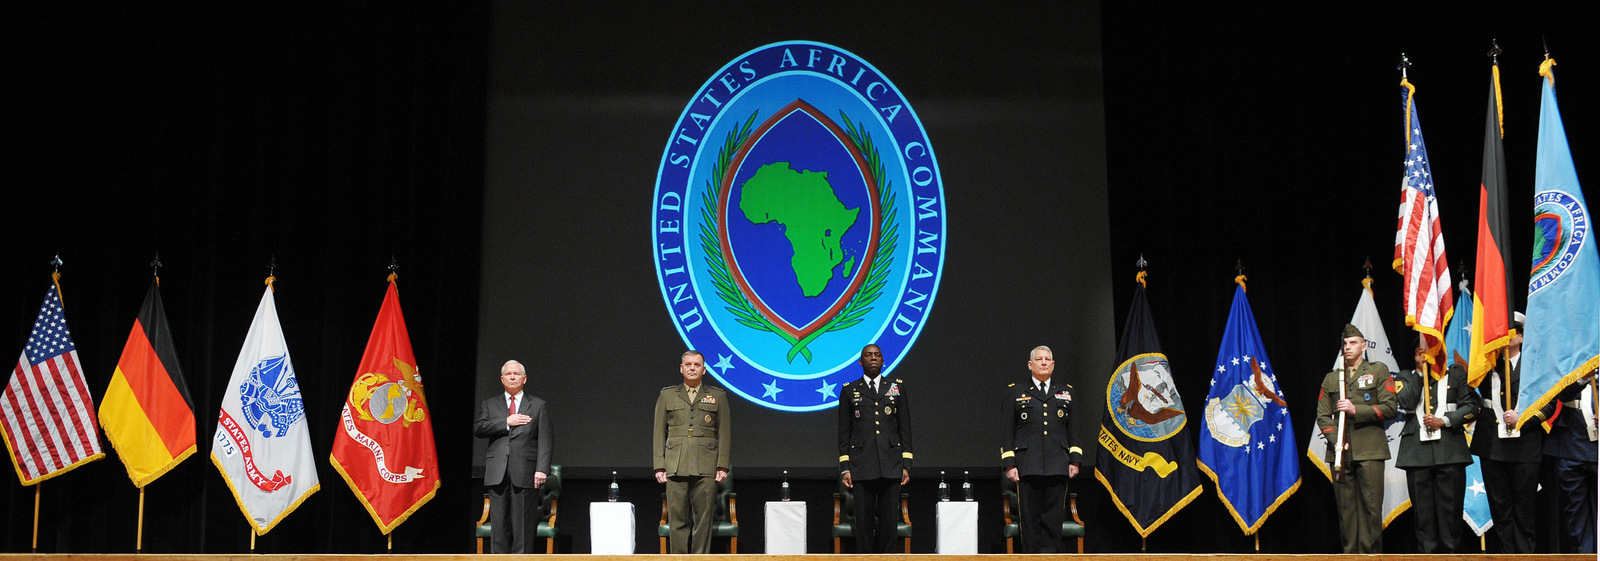 U.S. Defense Secretary Robert Gates, Vice Chairman of the Joint Chiefs of Staff Gen. James Cartwright, outgoing Africa Command commander Gen. William Ward, and the new Africa Command commander Gen. Carter Ham, center from left, take part in the AFRICOM change of command ceremony at the City Hall in Sindelfingen near Stuttgart, Germany, Wednesday, March 9, 2011. (AP/Mandel Ngan)